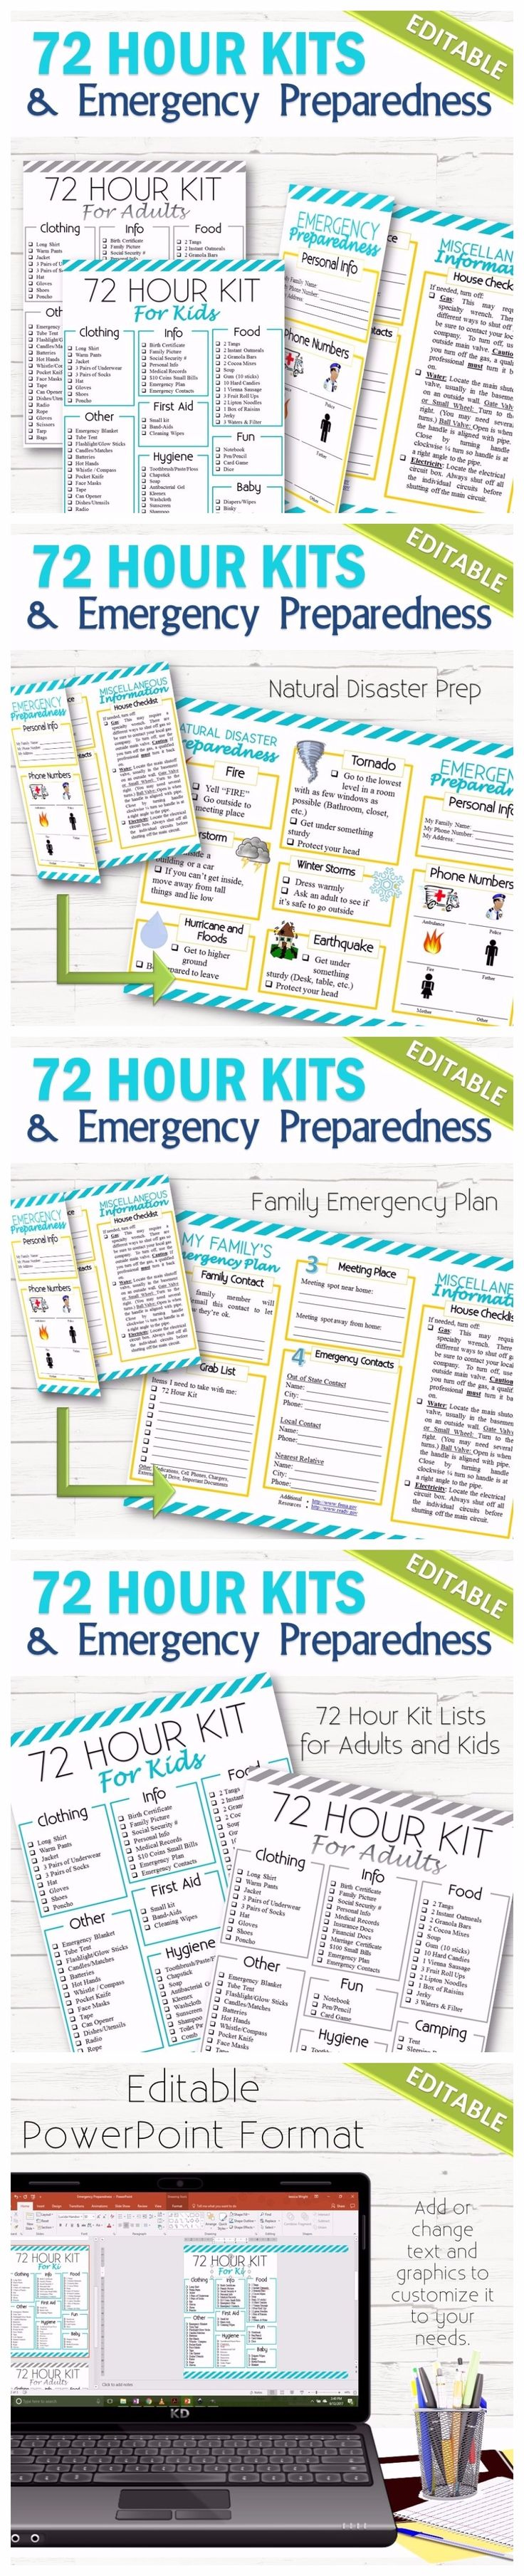 "A completely editable and simple way to help children and your family be ready for an emergency or natural disaster. The 72 Hour Kits lists are broken down by categories (food, clothing, etc.) to make gathering items easier and also includes ideas for games. The Preparedness Brochure is geared to have an ""All-in-One"" list so you can have phone numbers, family plan, what to grab, and what to do all on one sheet."